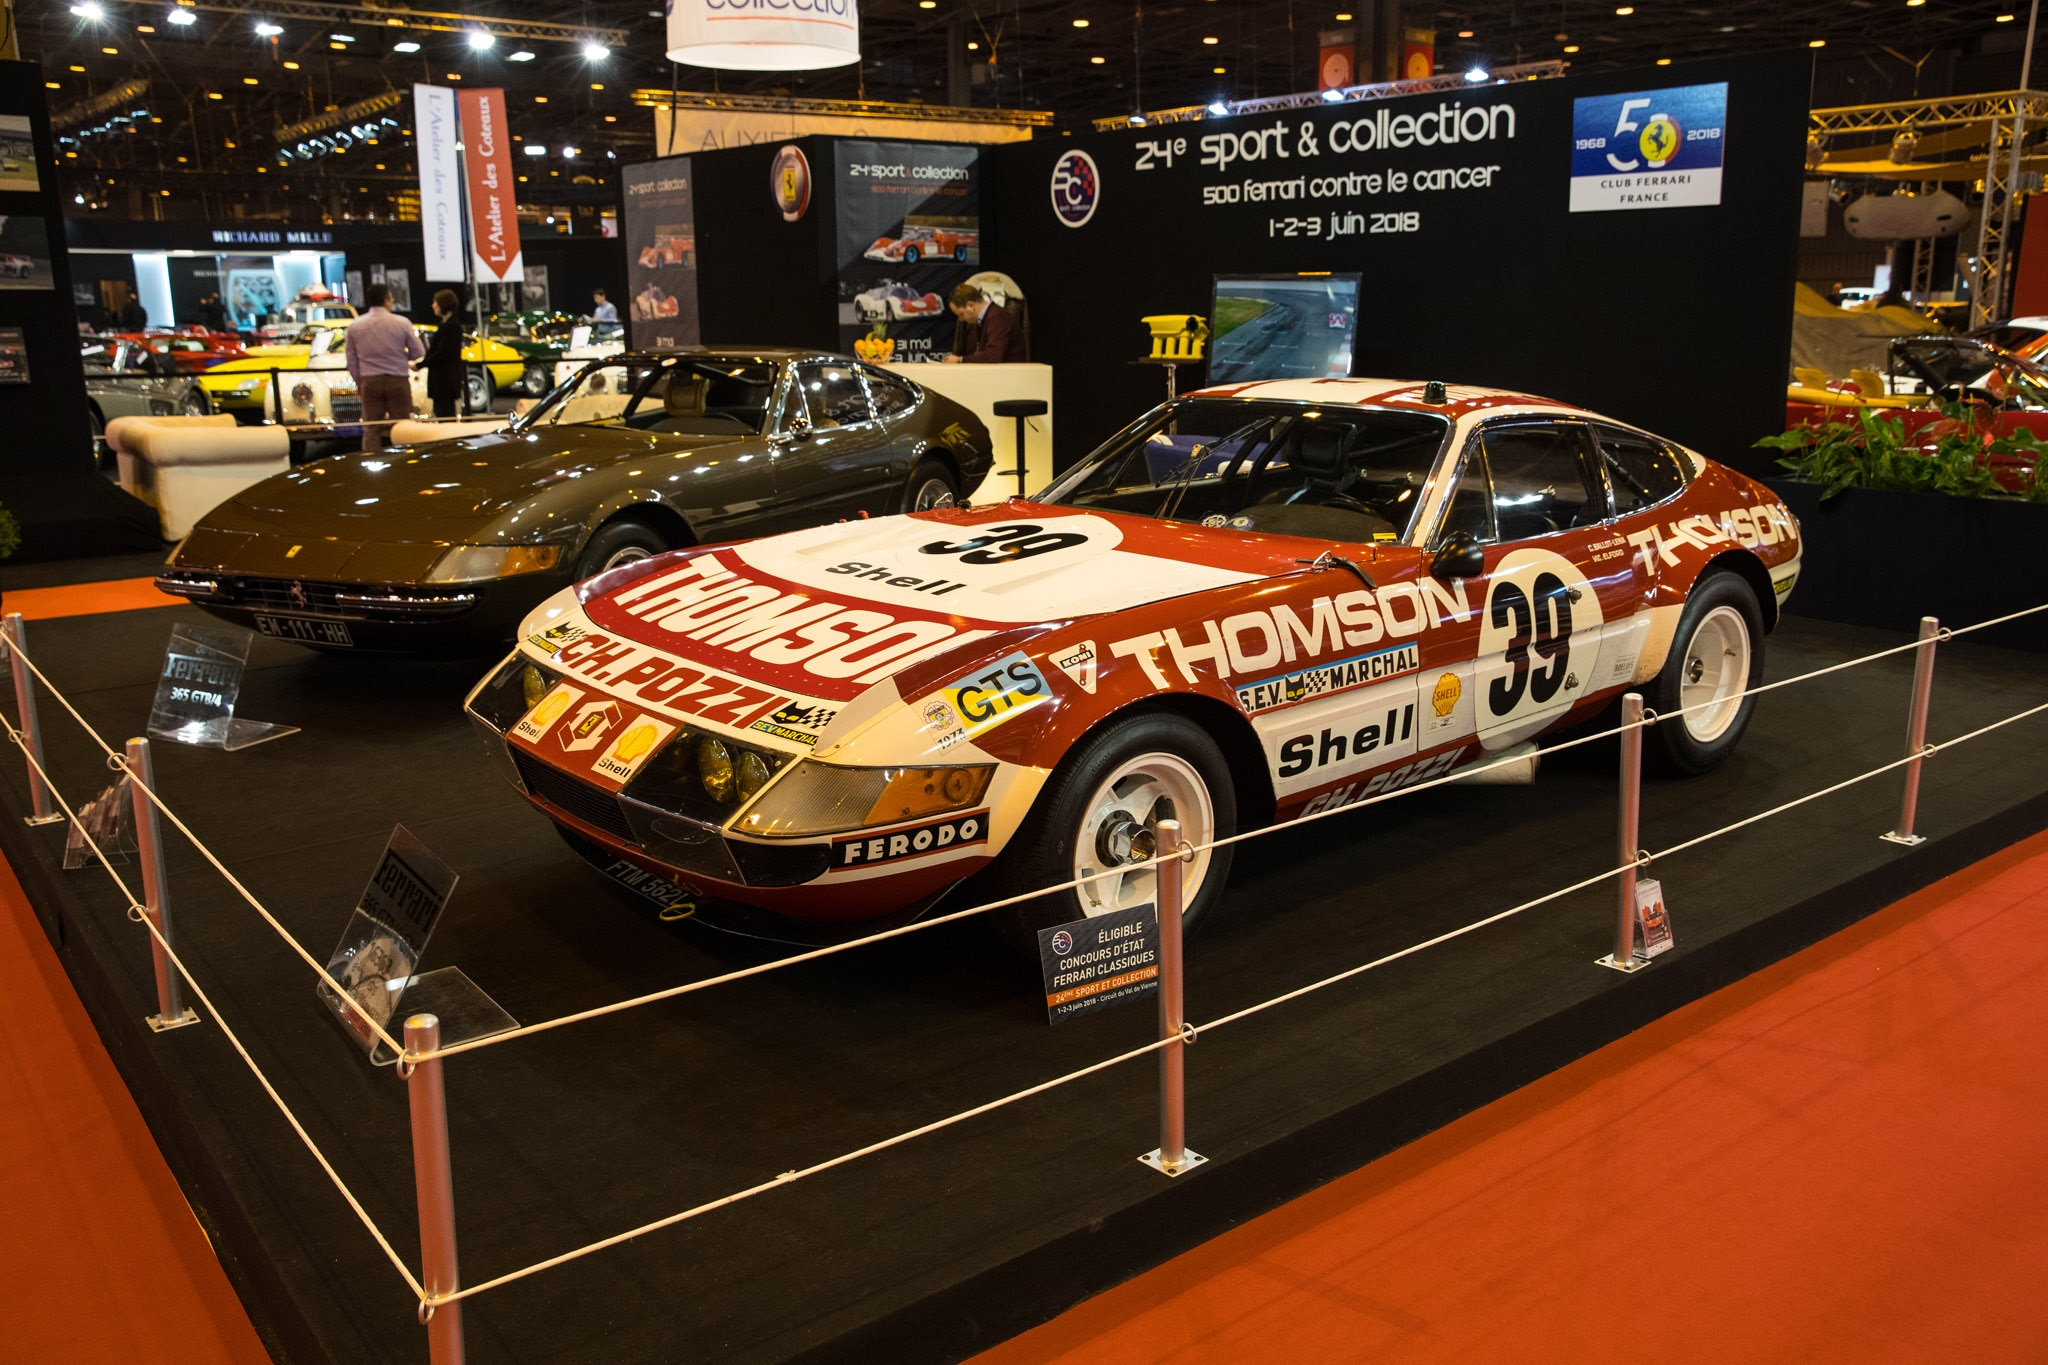 Wm 2018 Retromobile 18